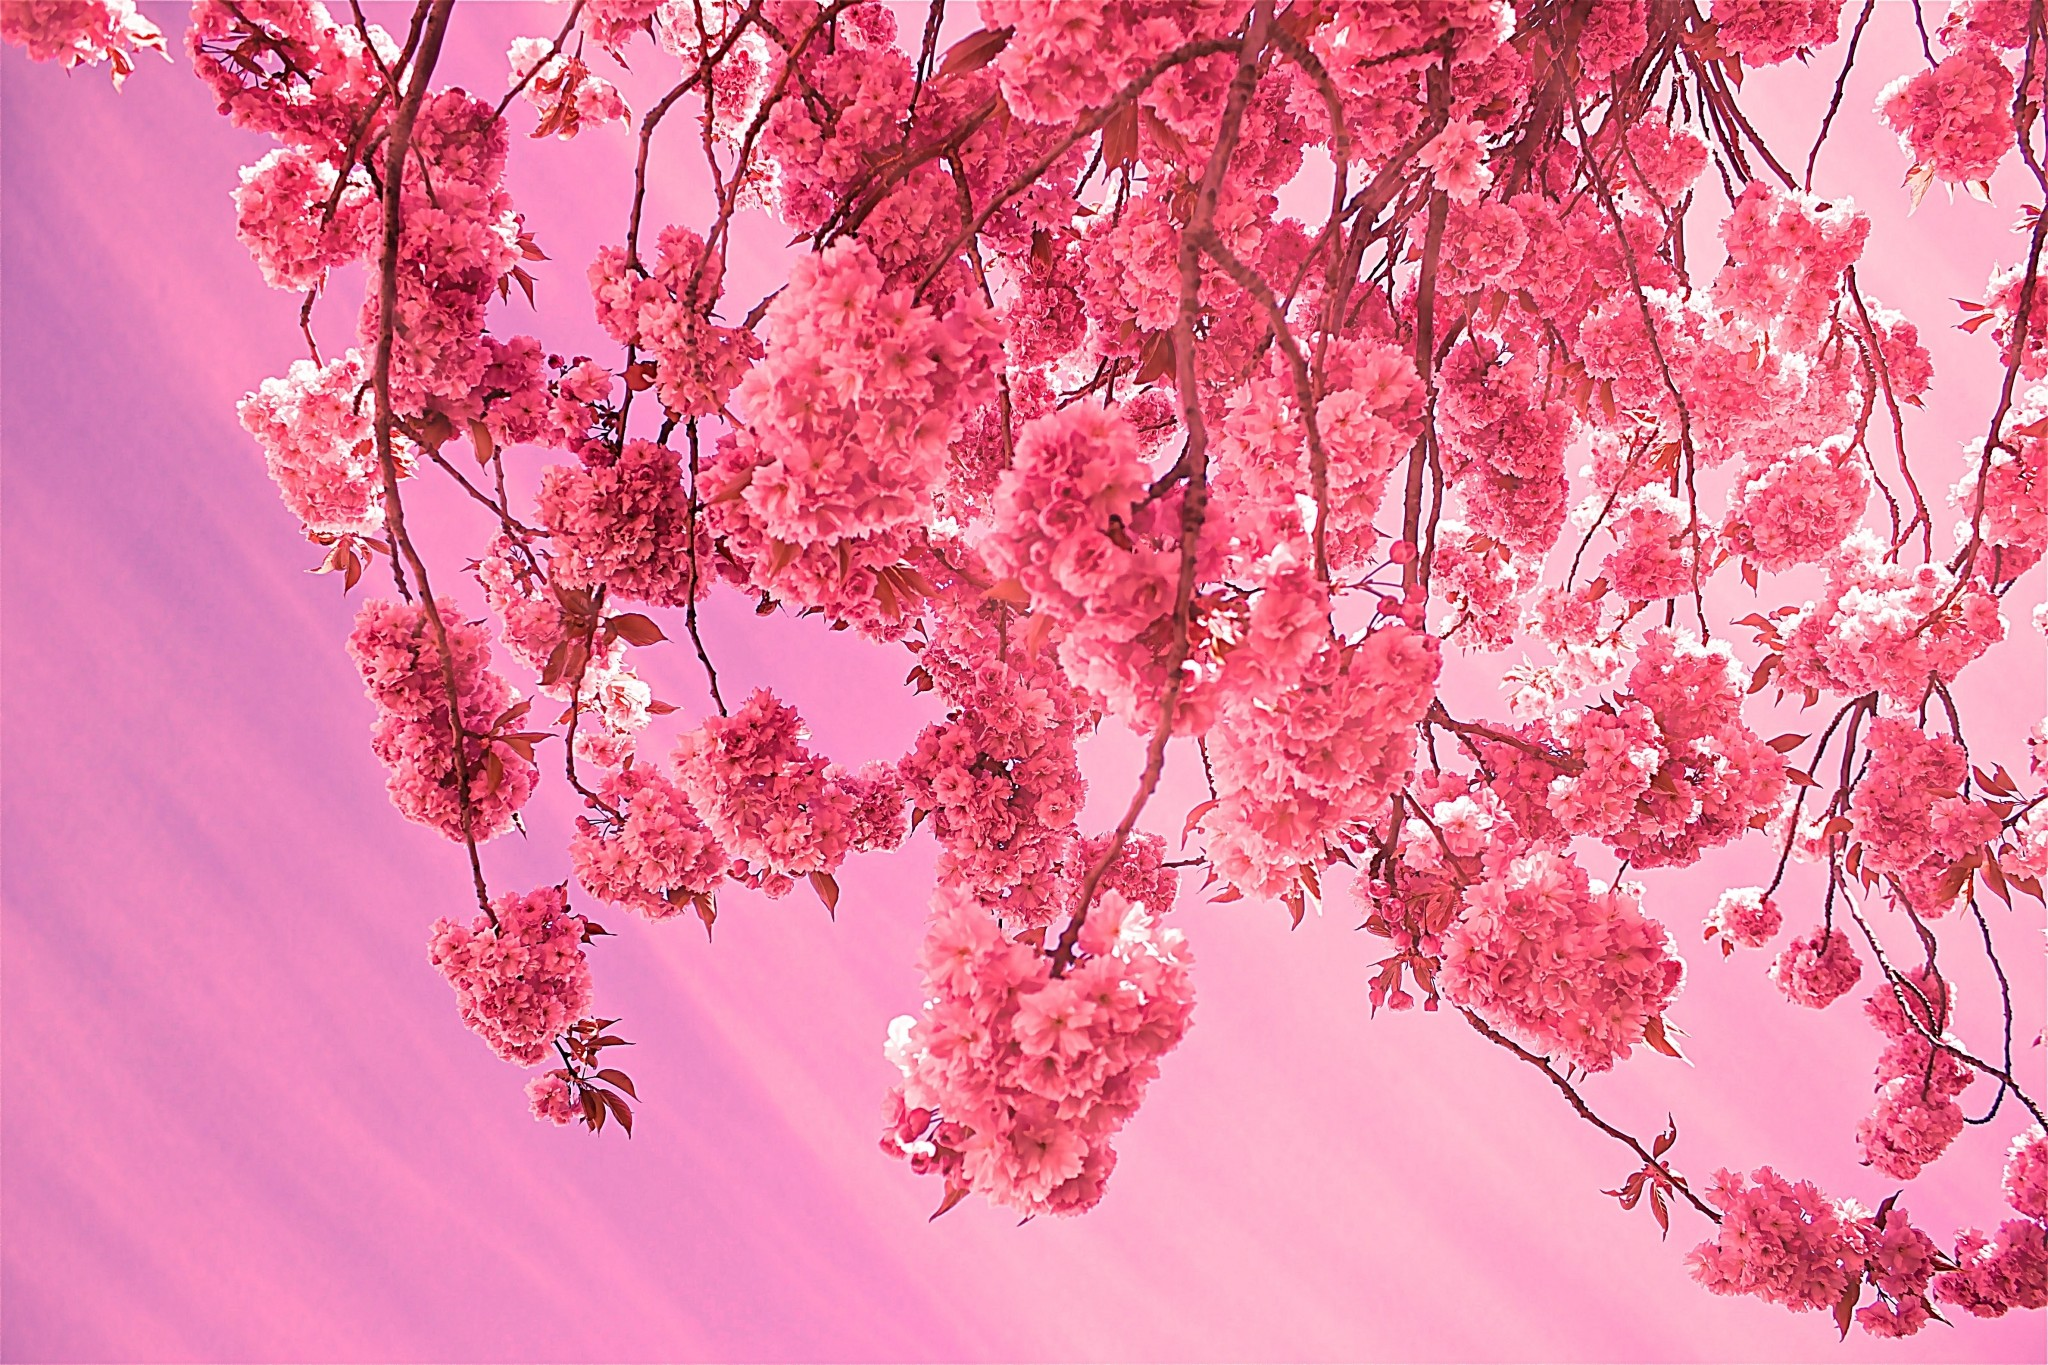 Cherry blossom wallpaper free Android Apps on Google Play 2048×1365